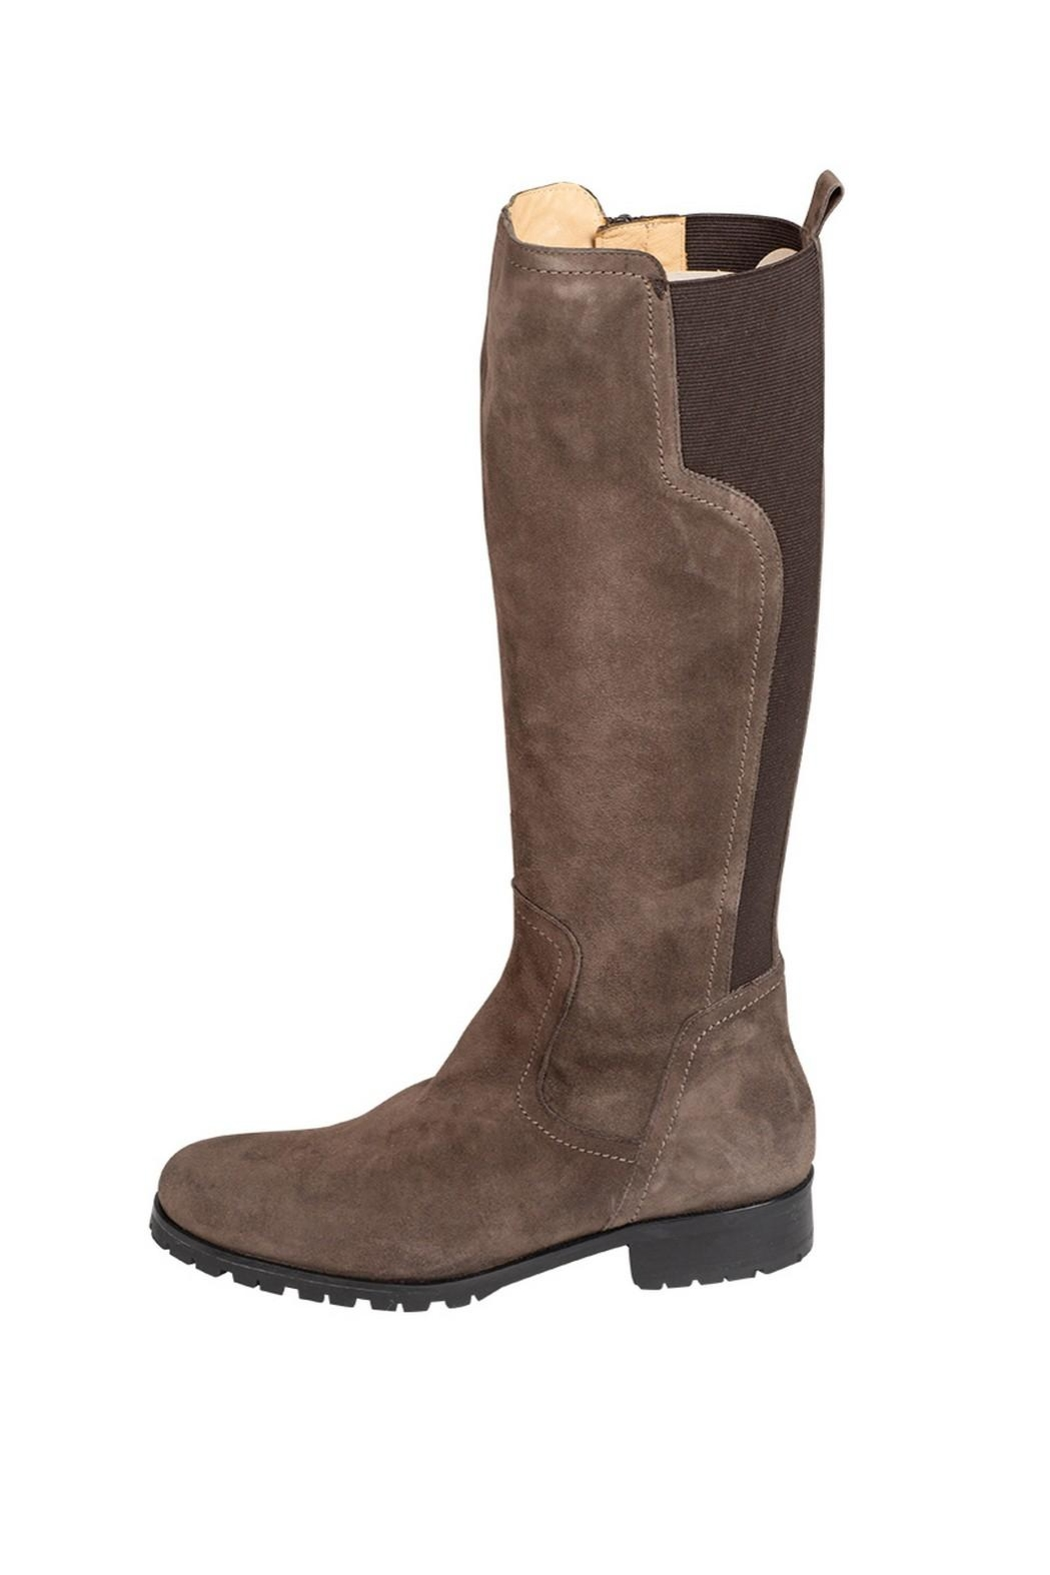 Pascucci Suede Taupe Knee-High-Boots - Main Image